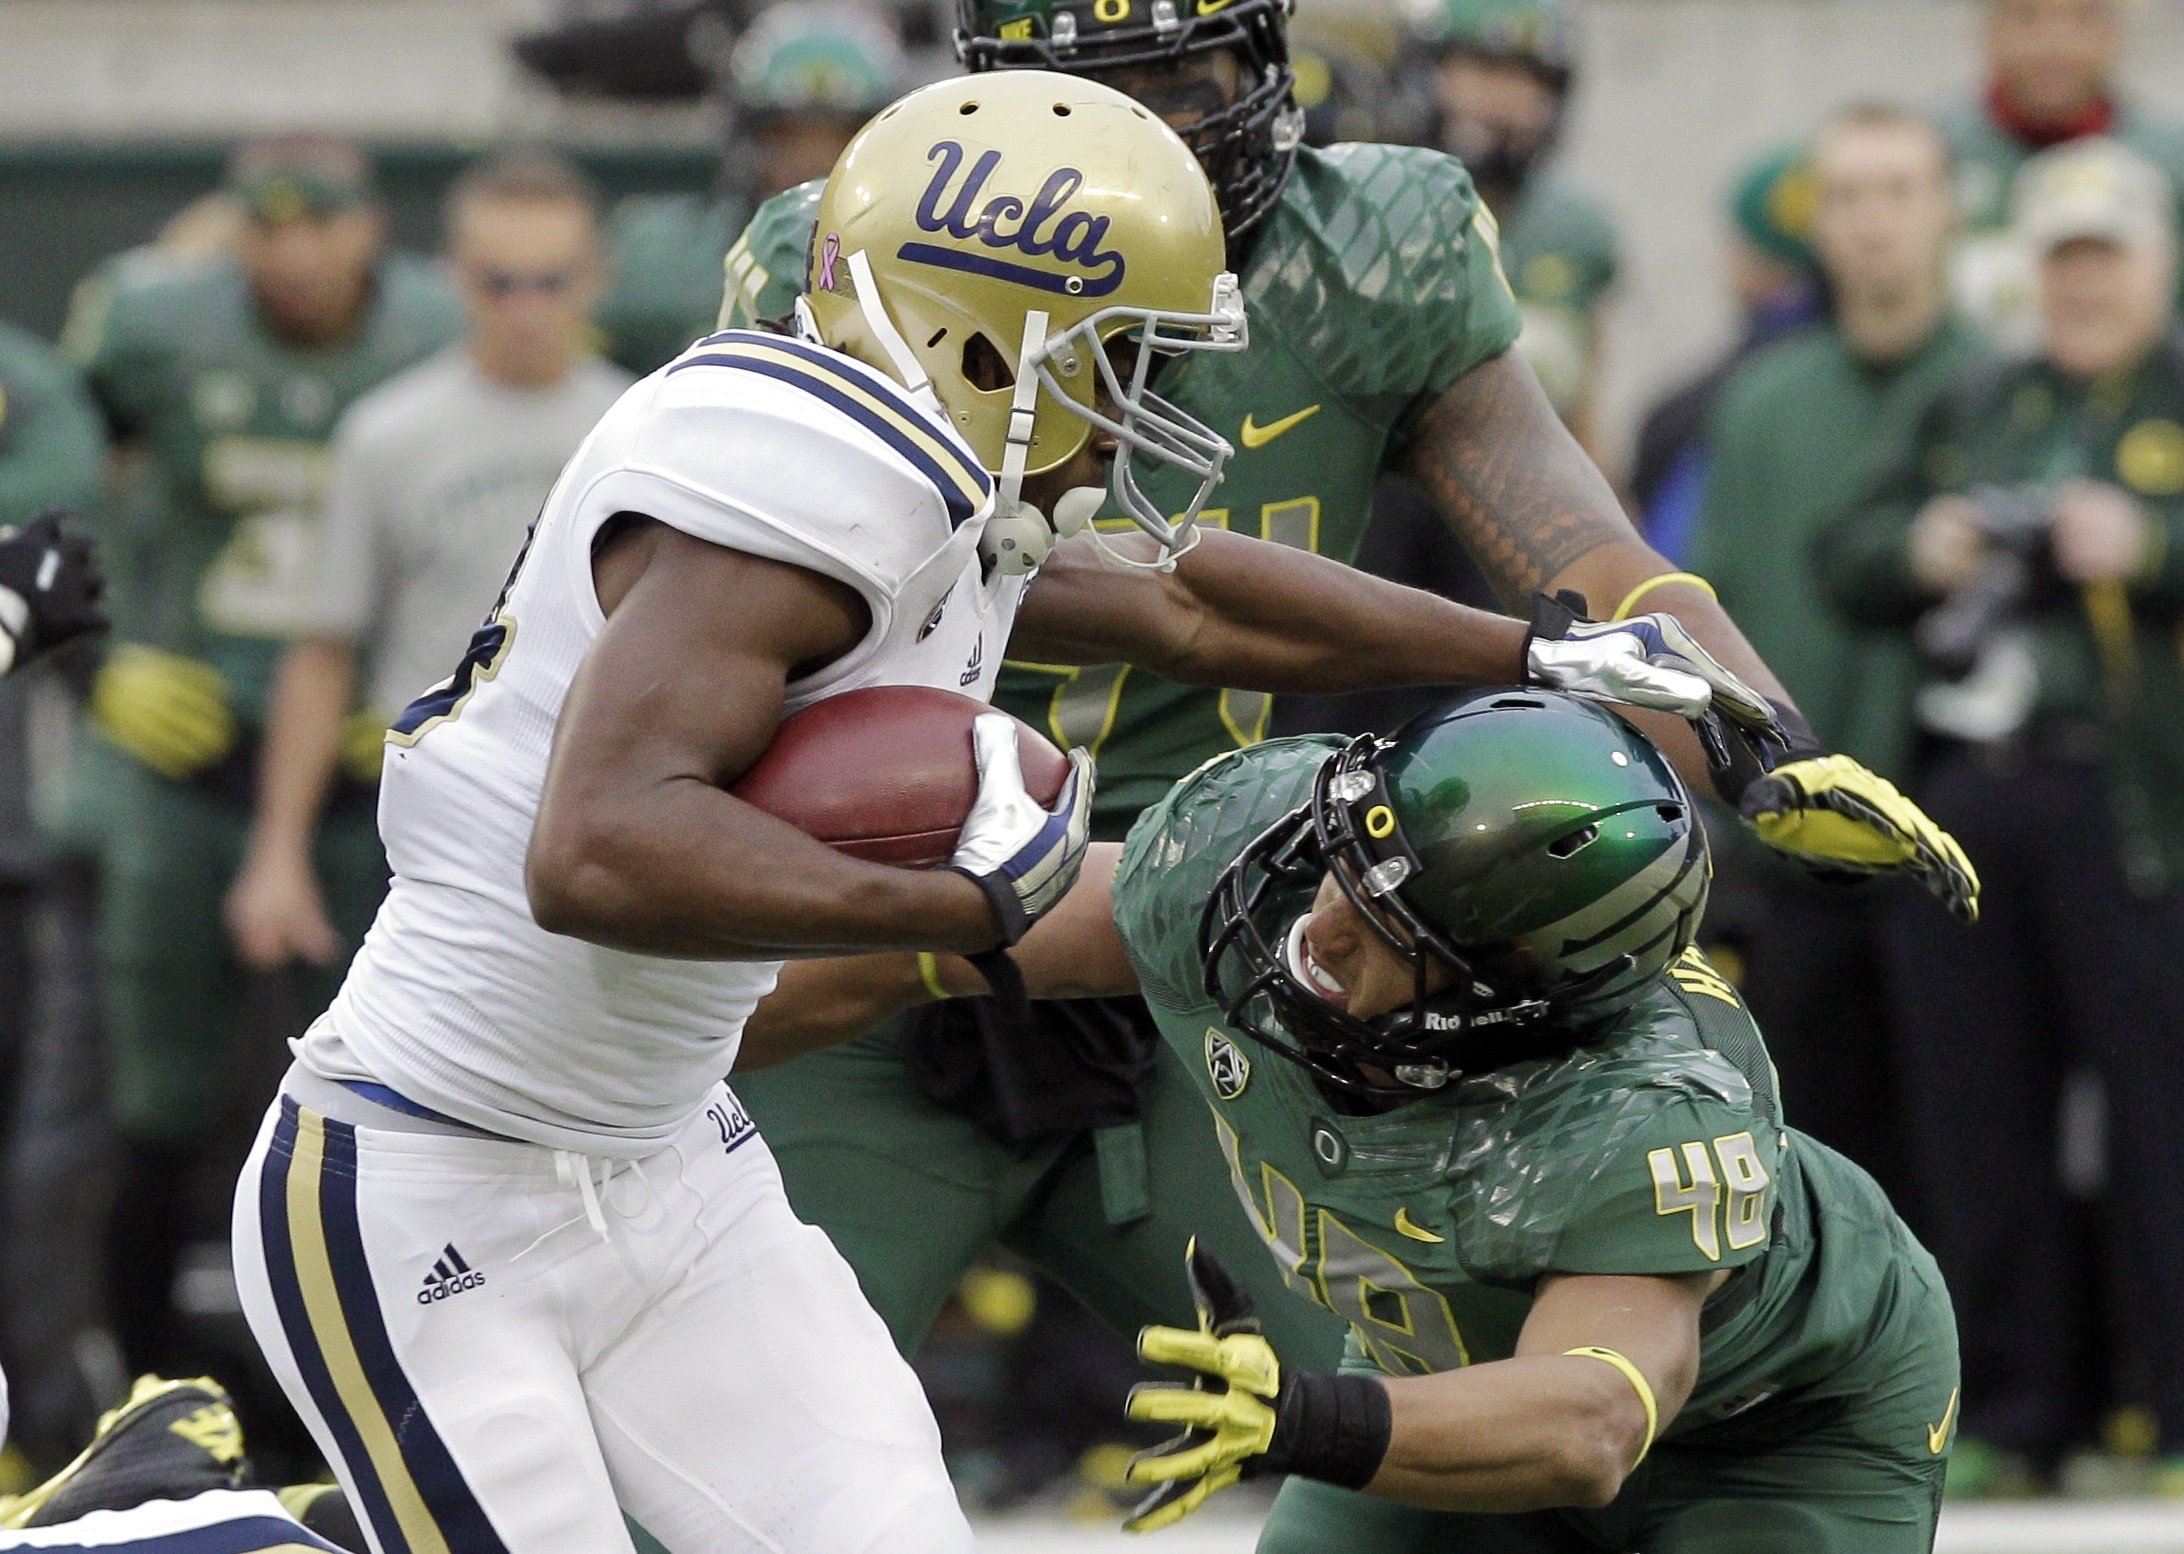 UCLA running back Paul Perkins, left, works for yardage against Oregon defender Rodney Hardrick during the first half of an NCAA college football game in Eugene, Ore., Saturday, Oct. 26, 2013. (AP Photo/Don Ryan)